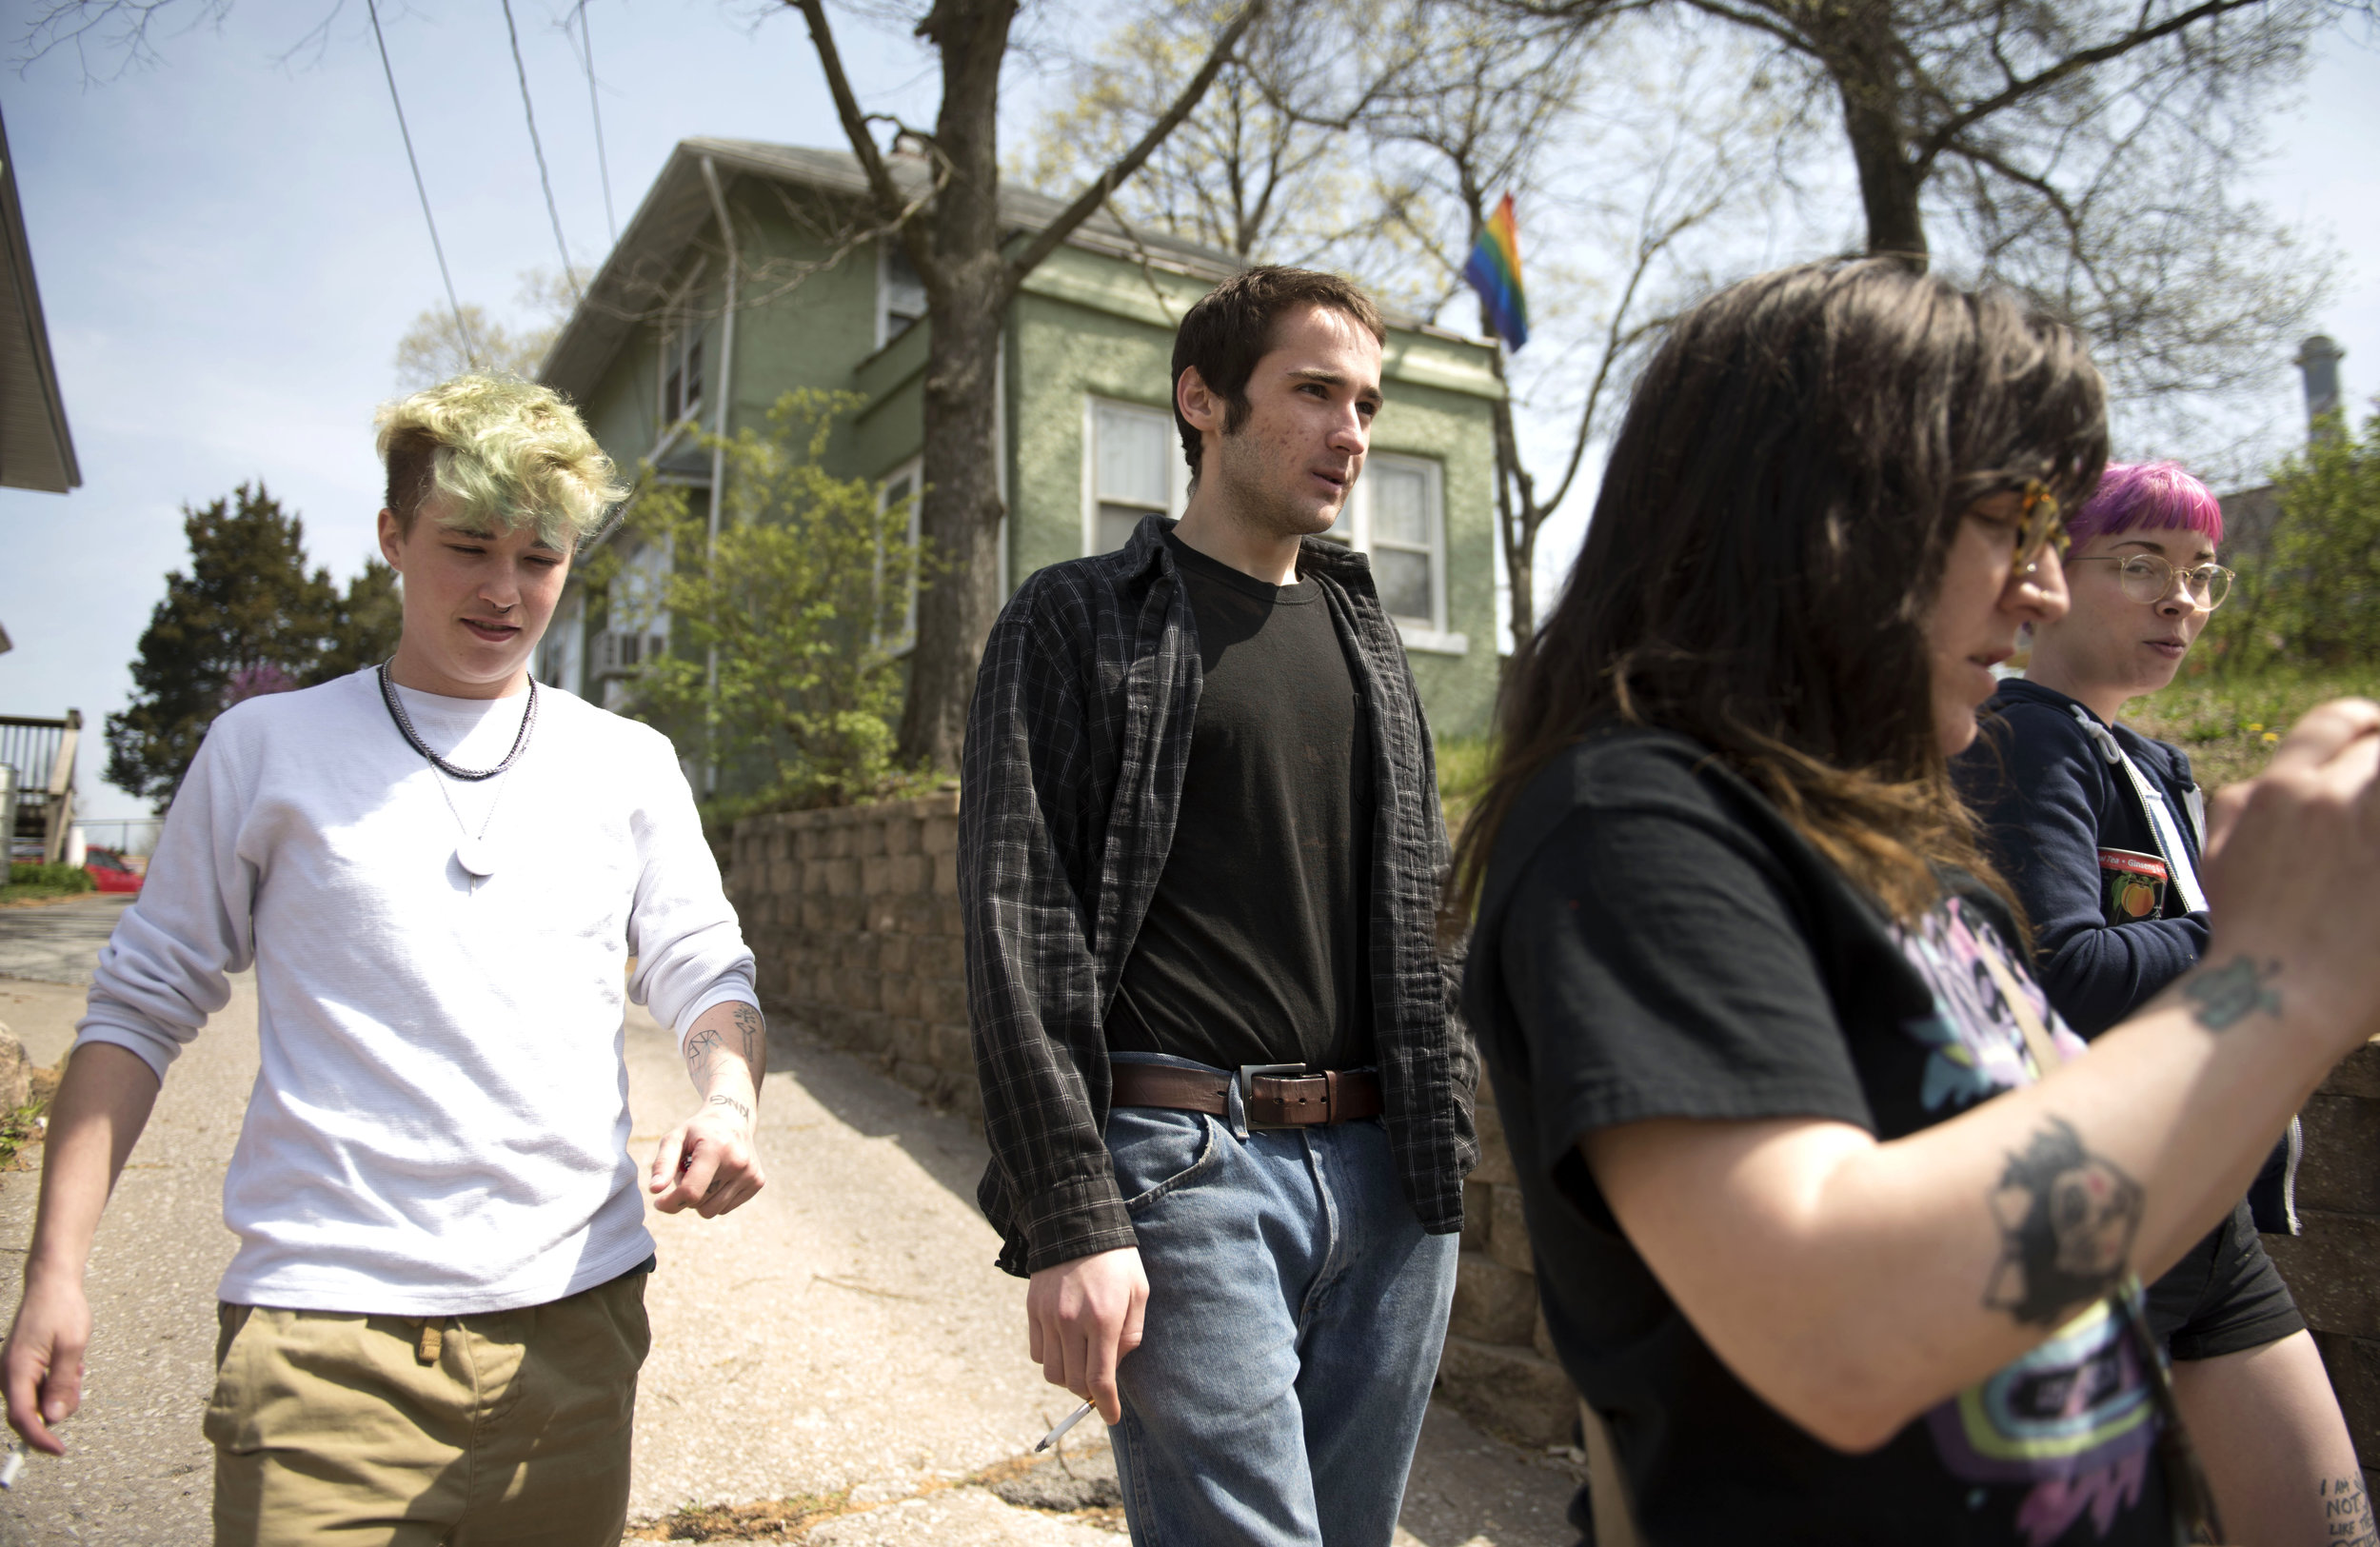 (From left) Zander, George, Alyssa and Briana take a walk to check on a bat they notice on a nearby trail. They named the bat Wesley and called Animal Control to check on the bat. Unfortunately, Wesley had to be euthanized and tested for Rabies.